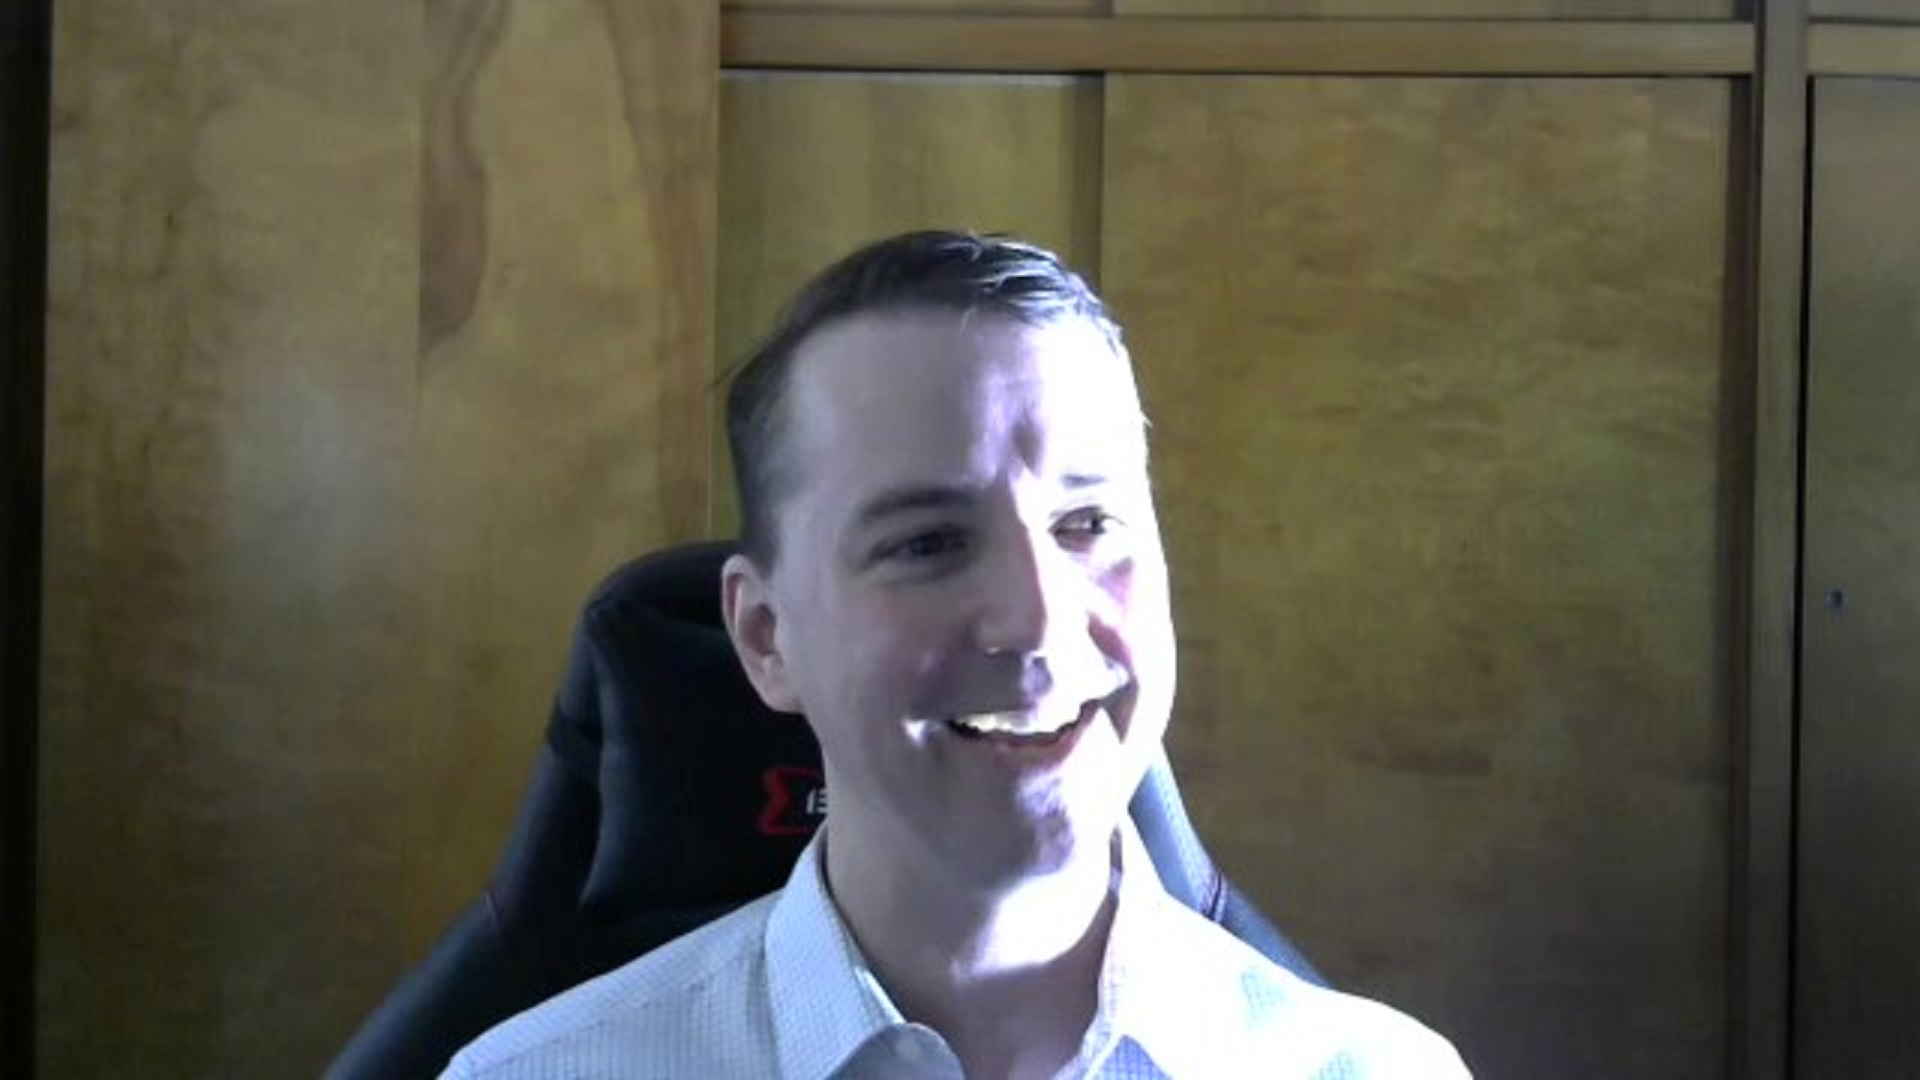 a screenshot of a video chat of a White man talking and smiling